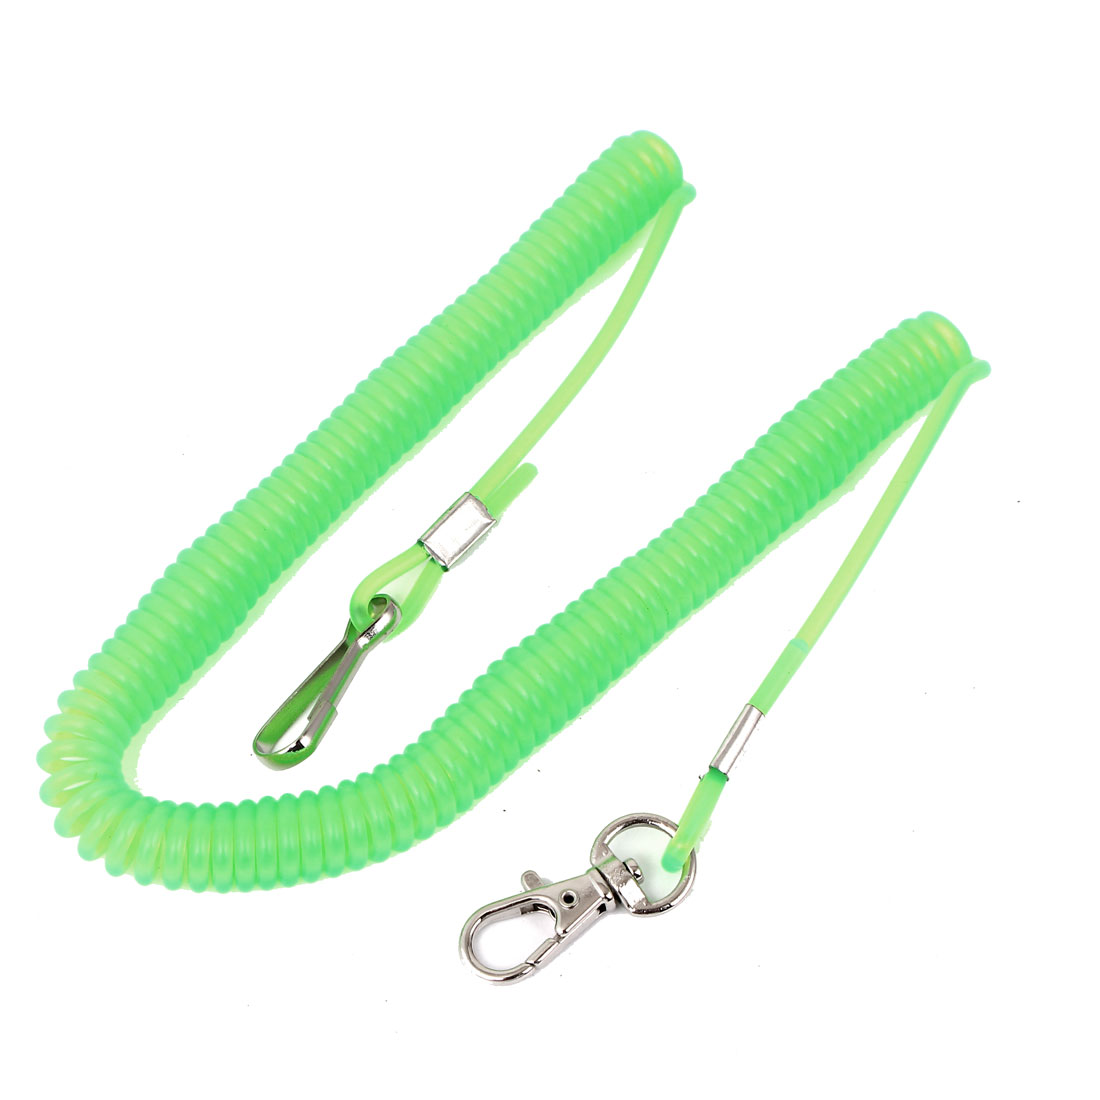 10Ft 3Meter Retractable Stretchy Coiled Fishing Lanyard Rope String Cable Safety Line Green